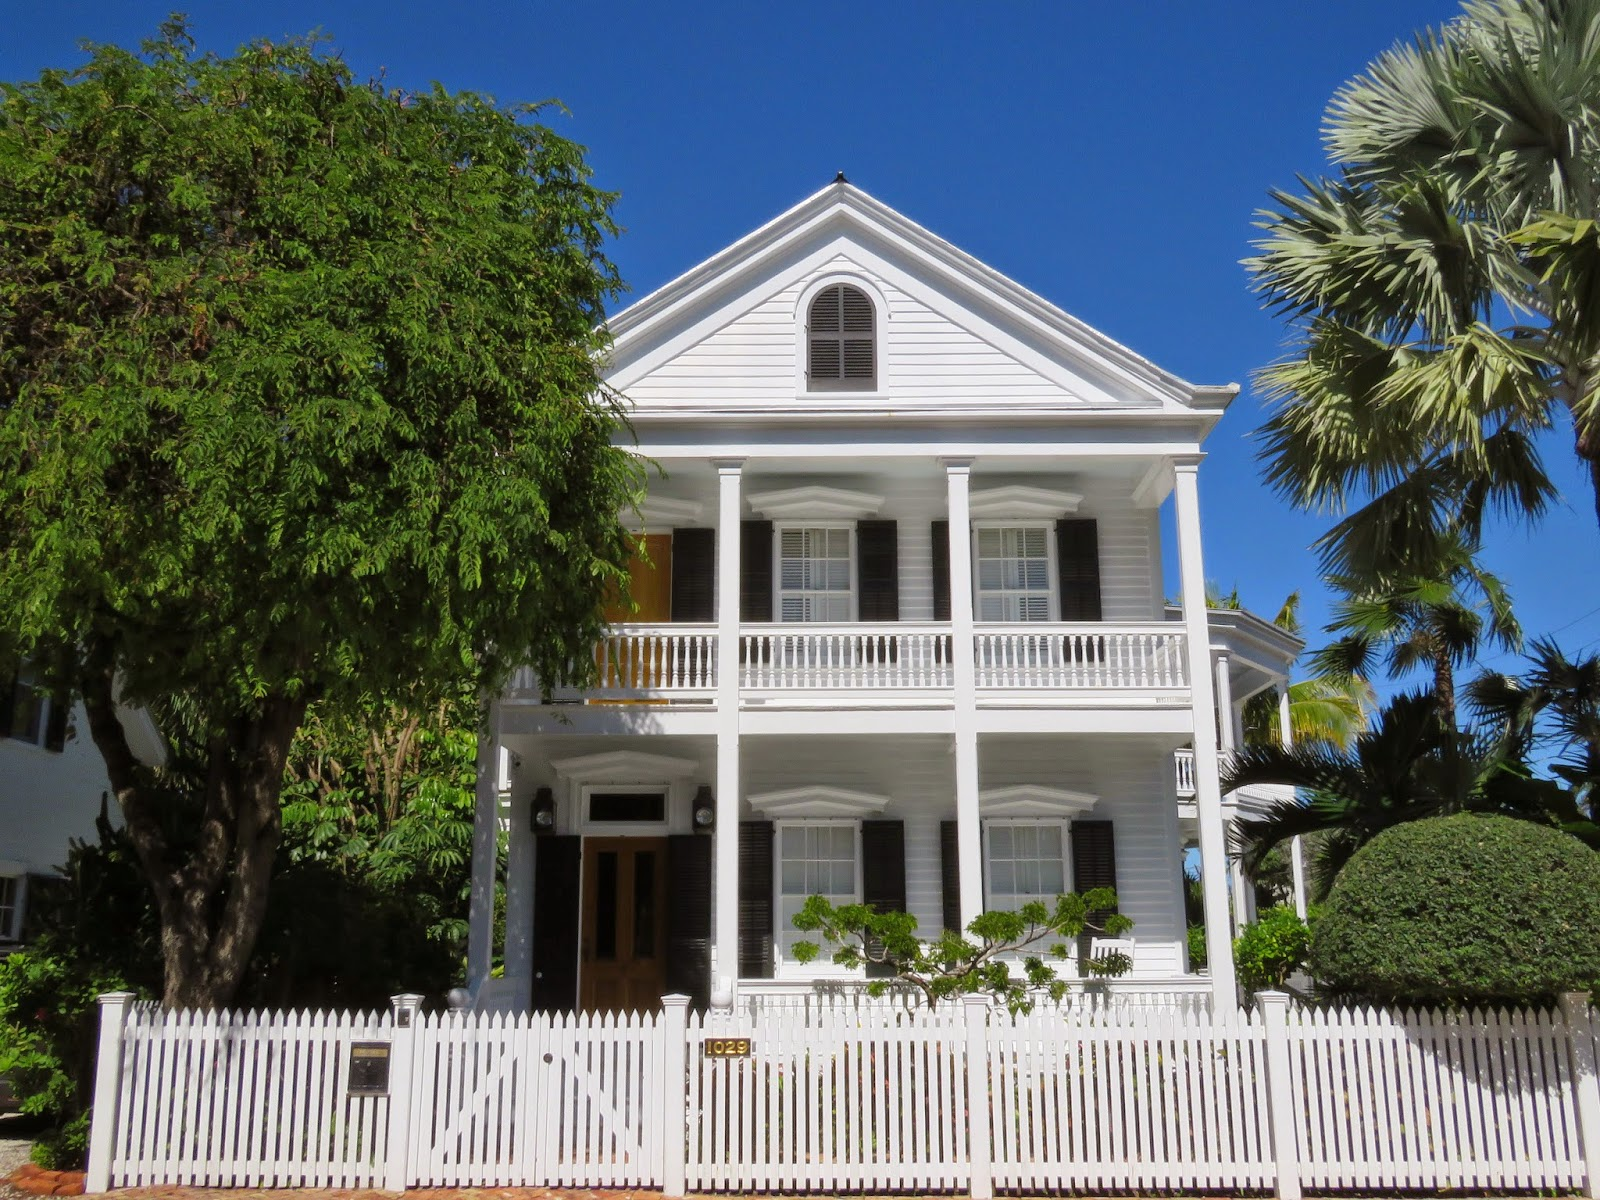 Key west vacation and visit guide most beautiful key west Beautiful homes com